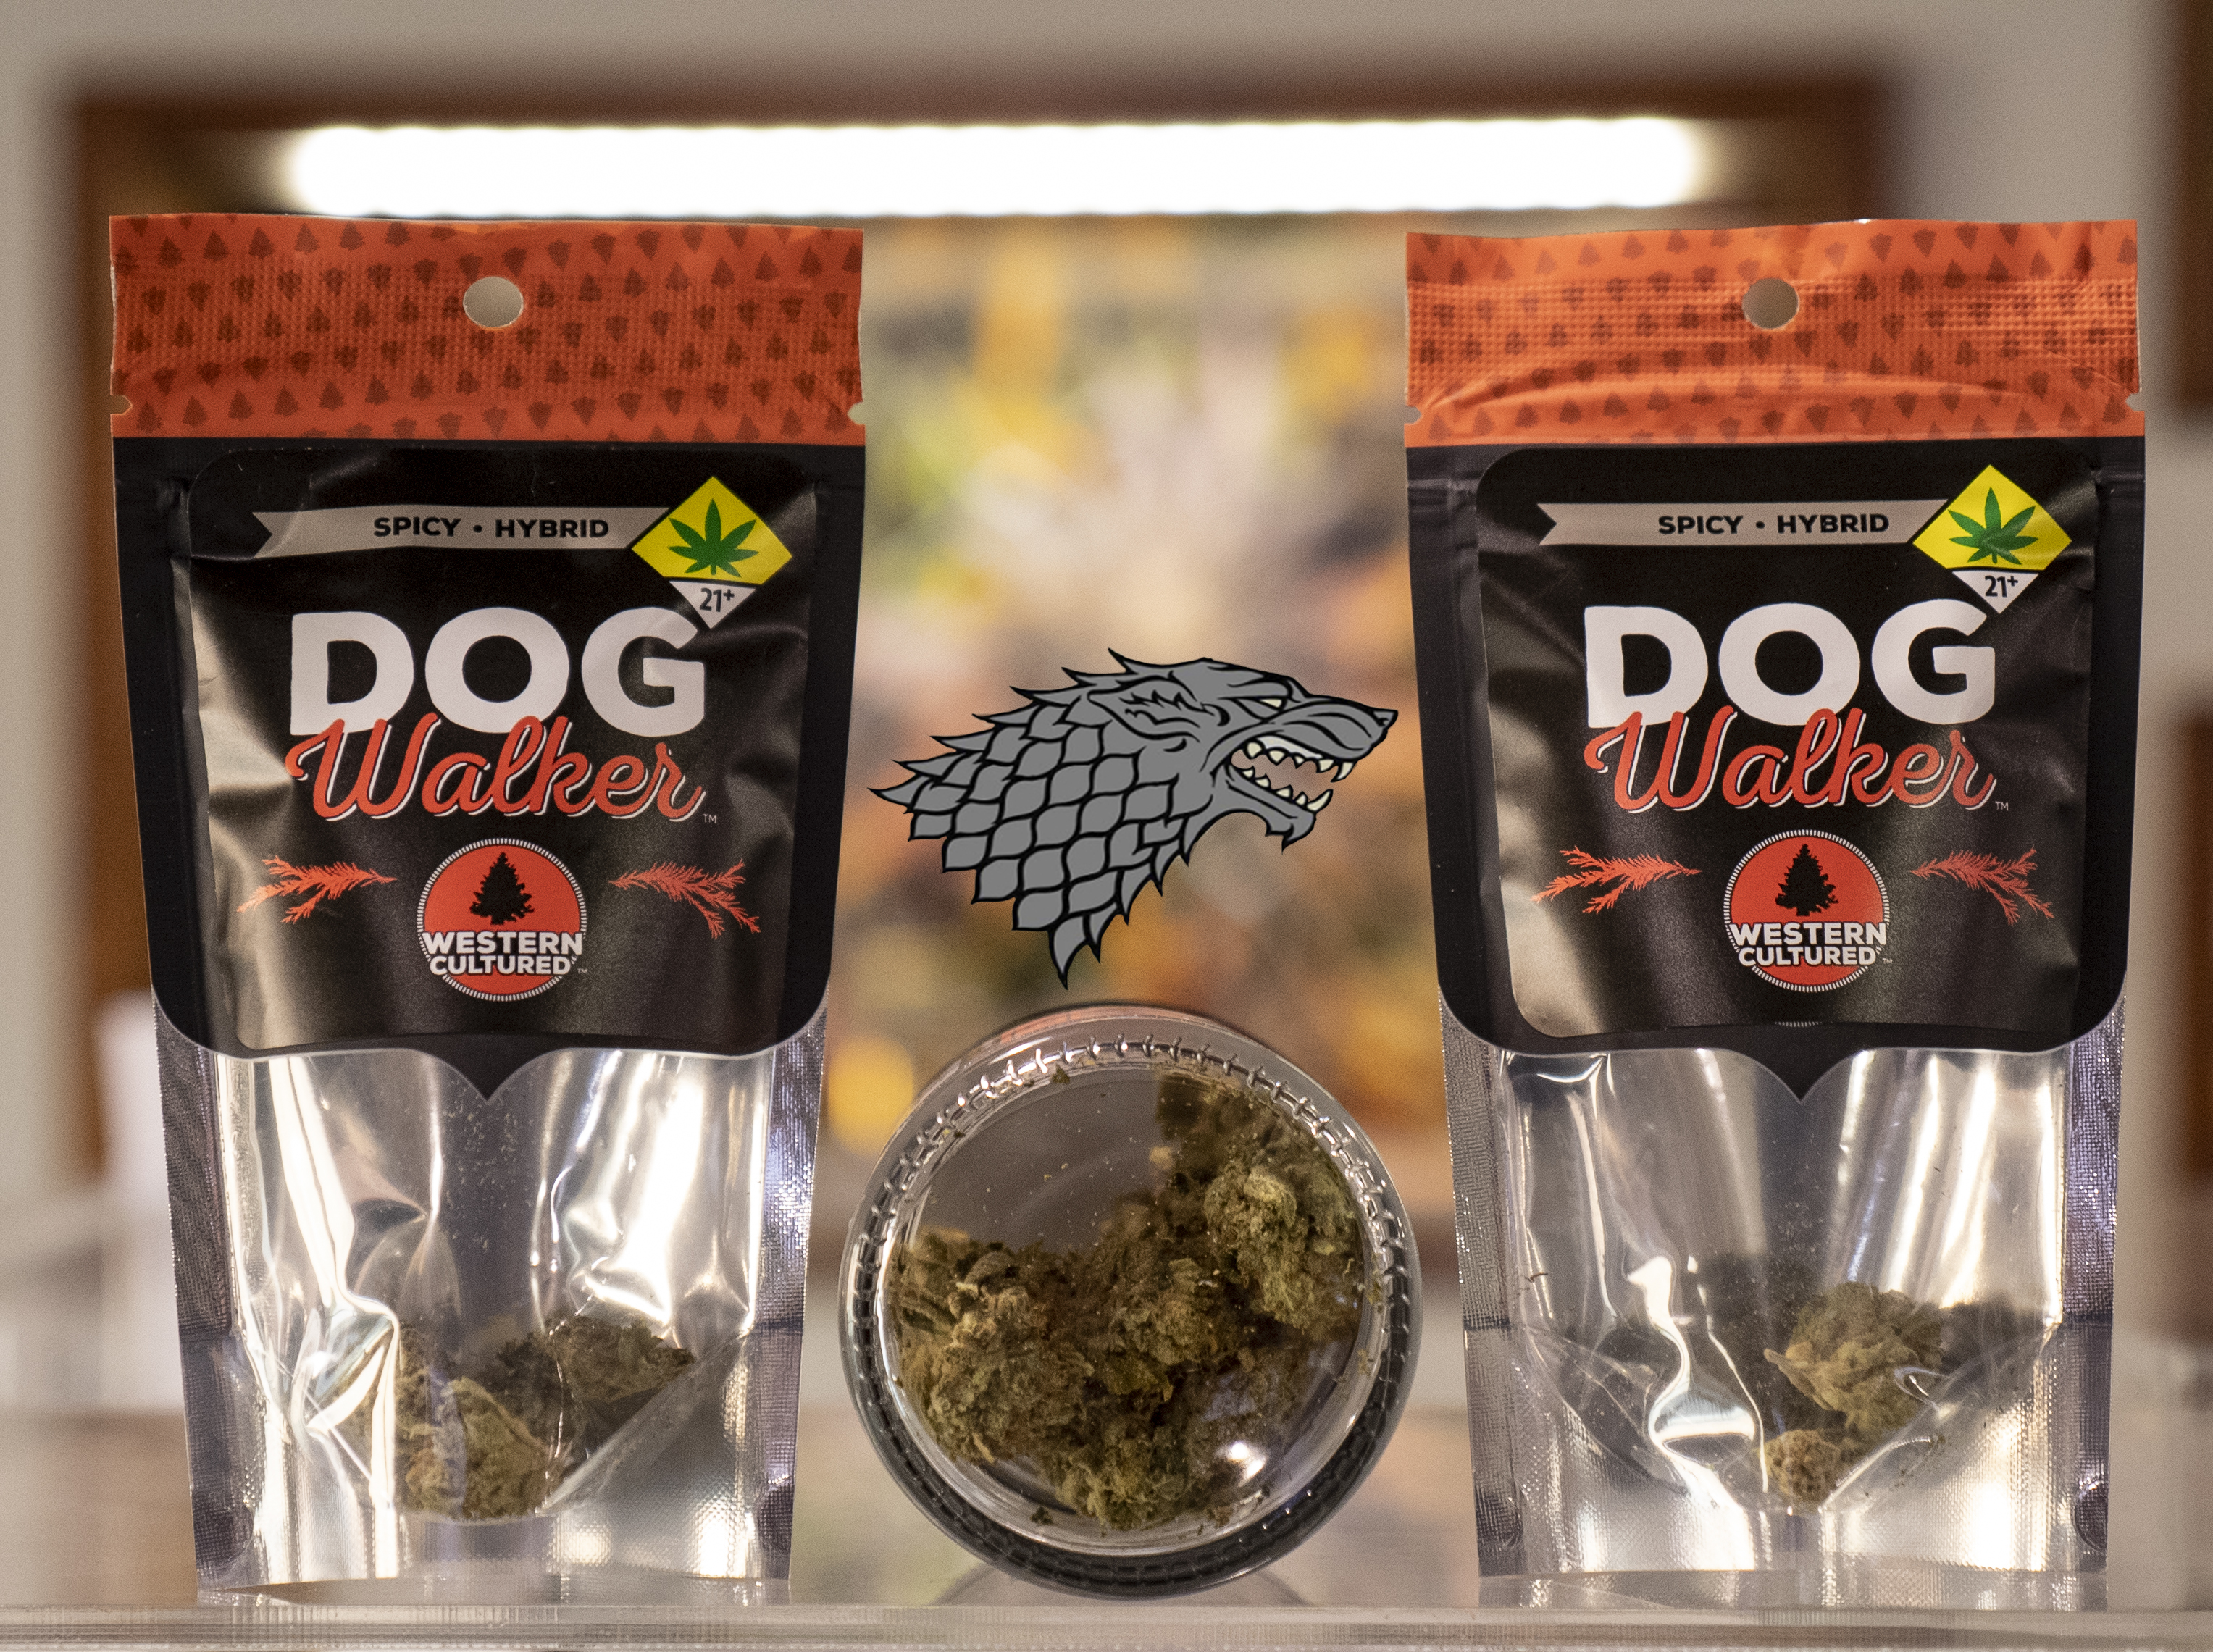 Game of Thrones Cannabis Strains and Sigils: Dog Walker OG and House Stark